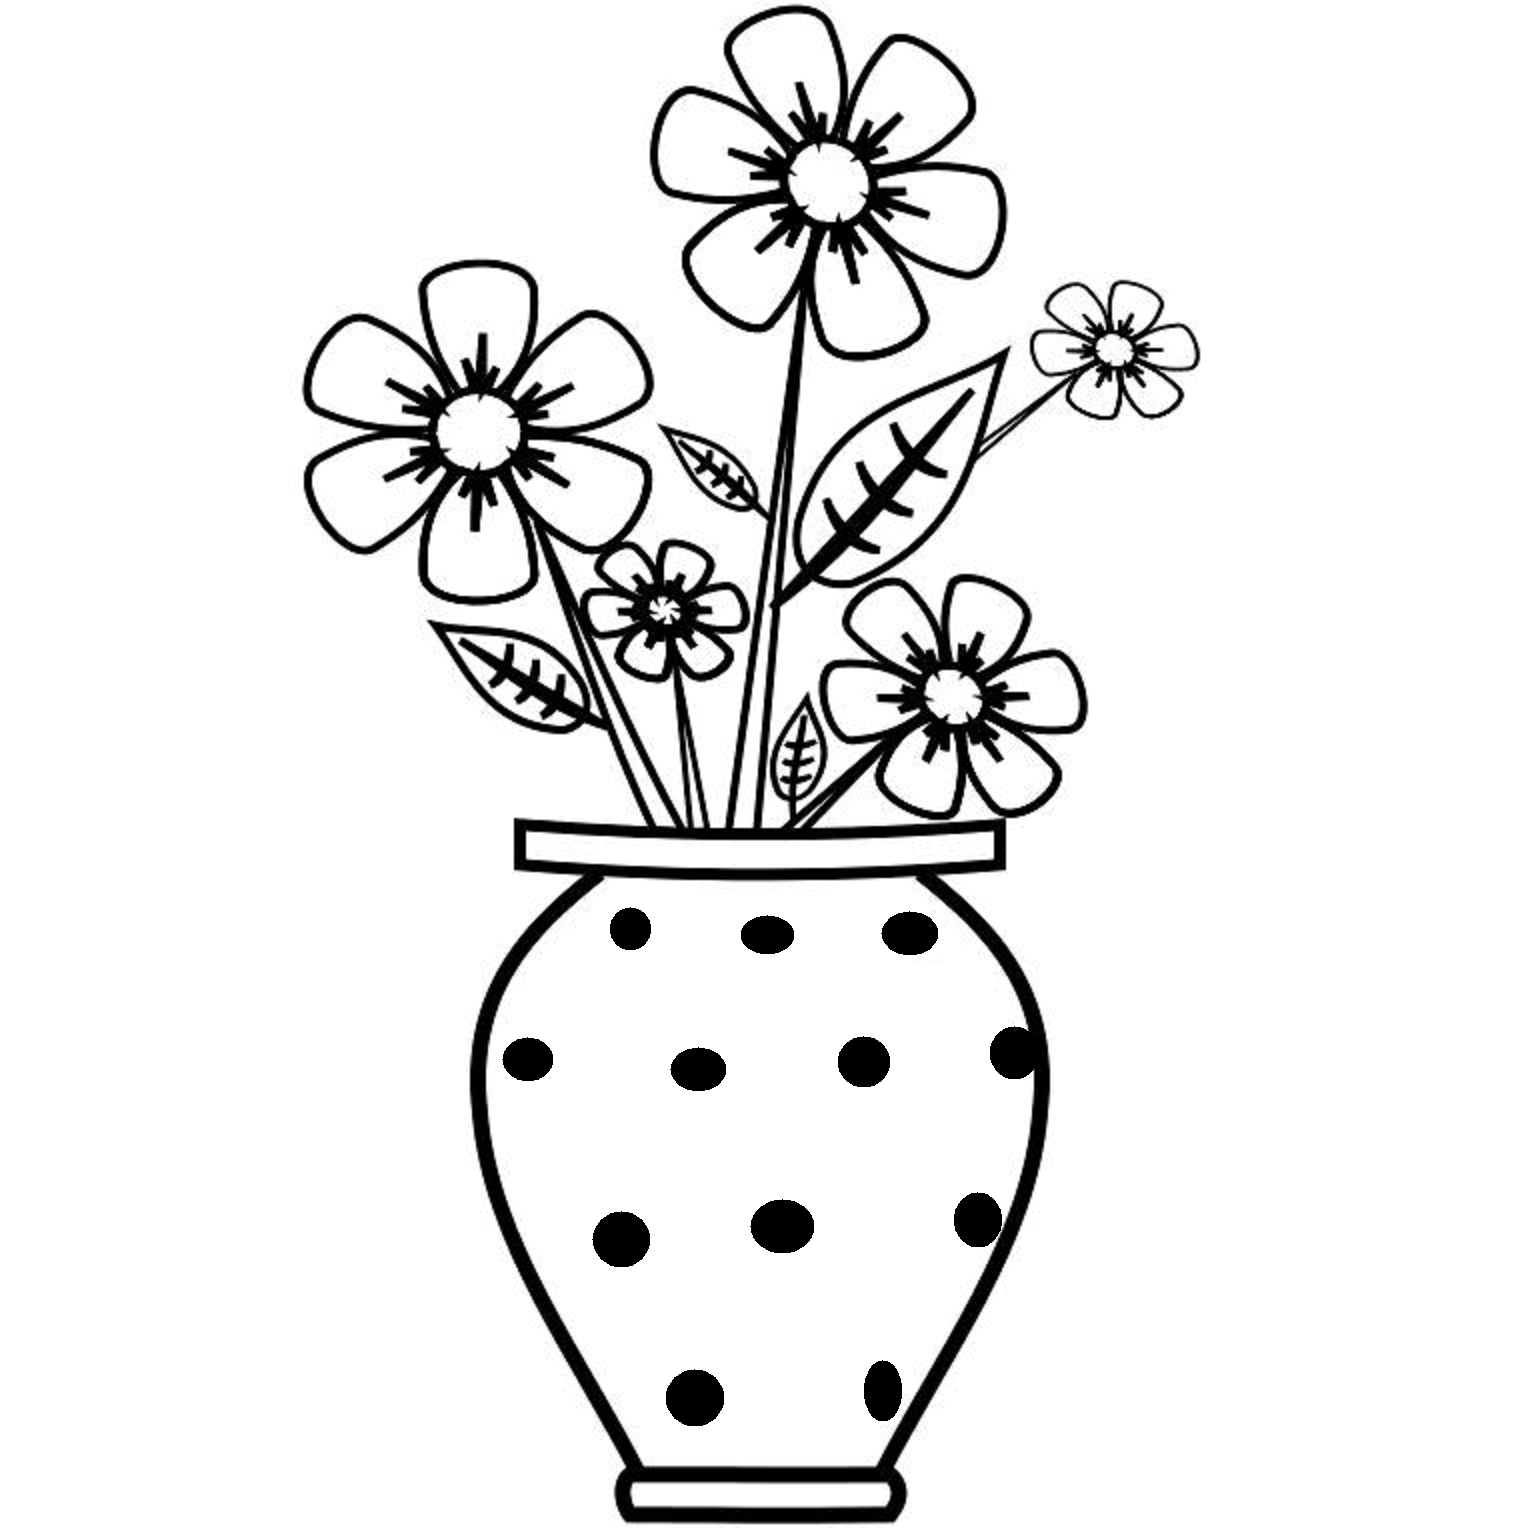 Drawn vase easy Pics In Flowers Of Beautiful